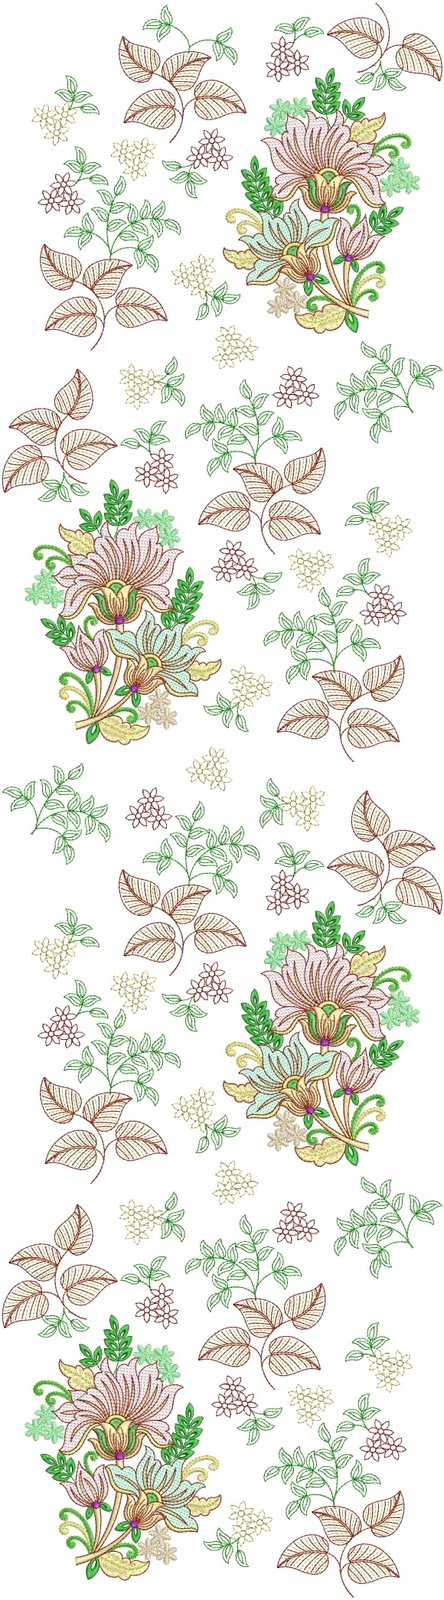 Embroidery designs 36 dress designs jall Fashion embroidery designs